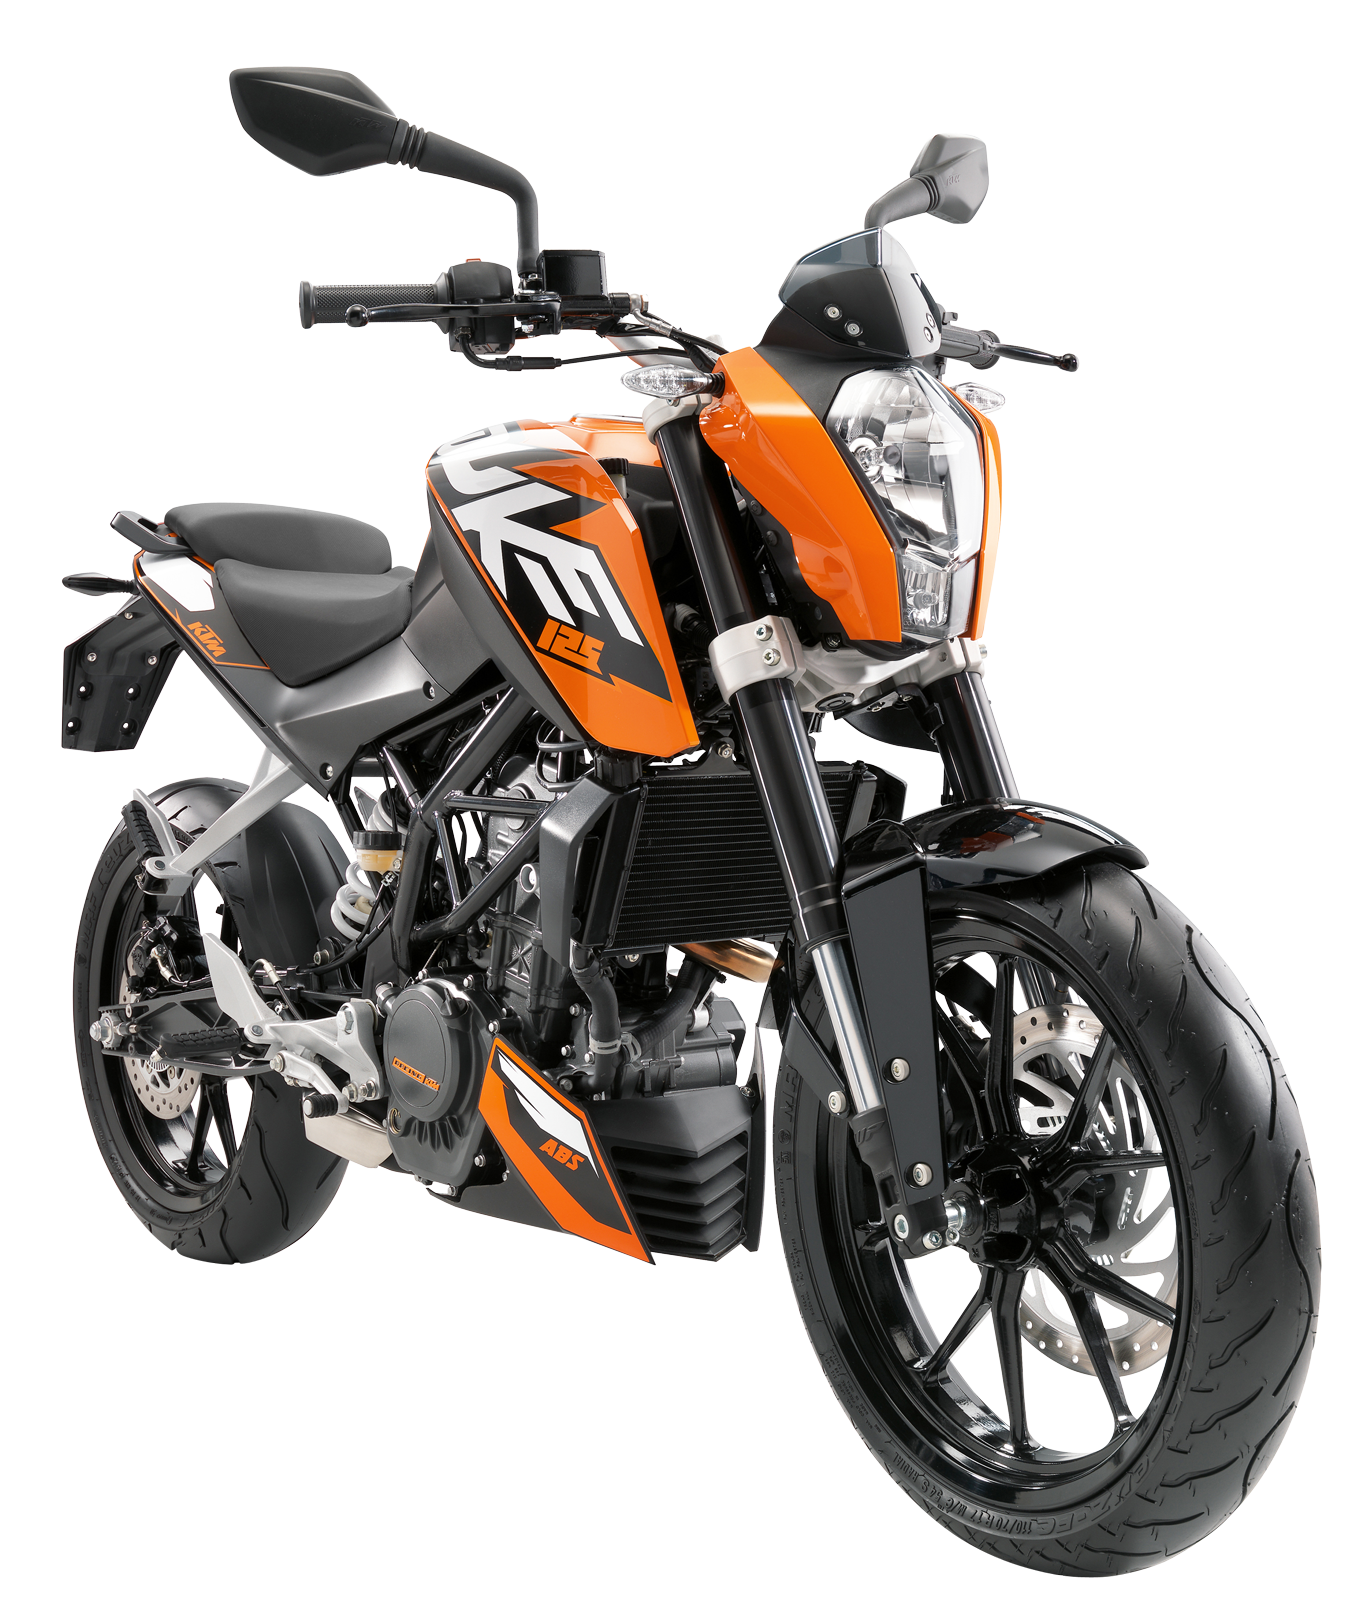 Motorcycle clipart two wheeler. Ktm png images pngpix